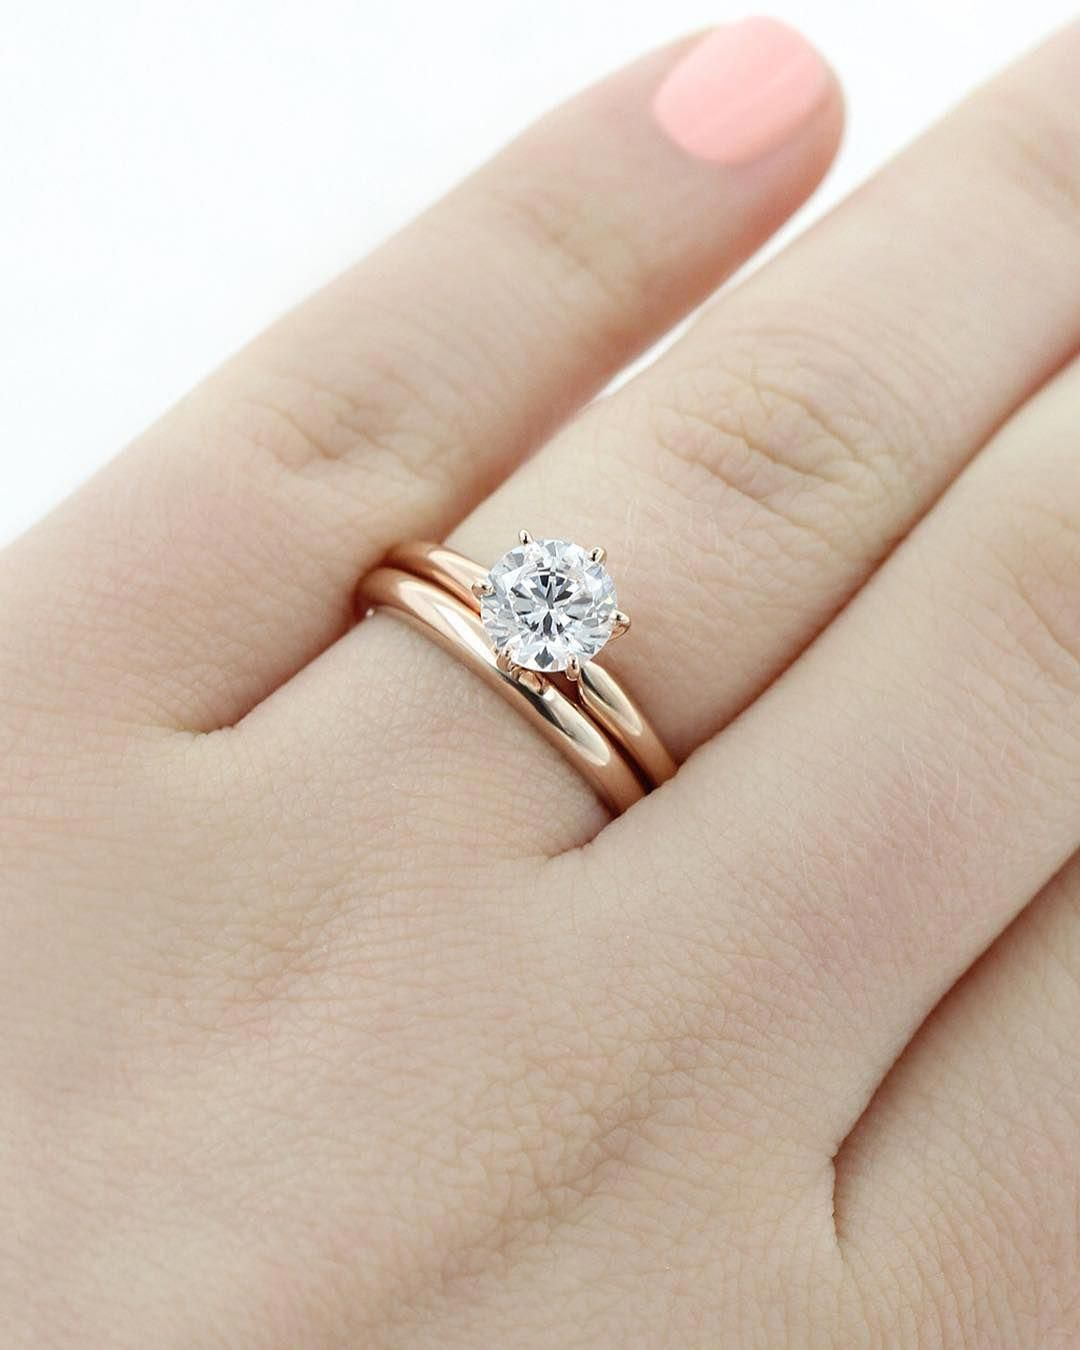 Wedding Ring On Sale.Cushion Cut Diamond Rings On Sale Right Now